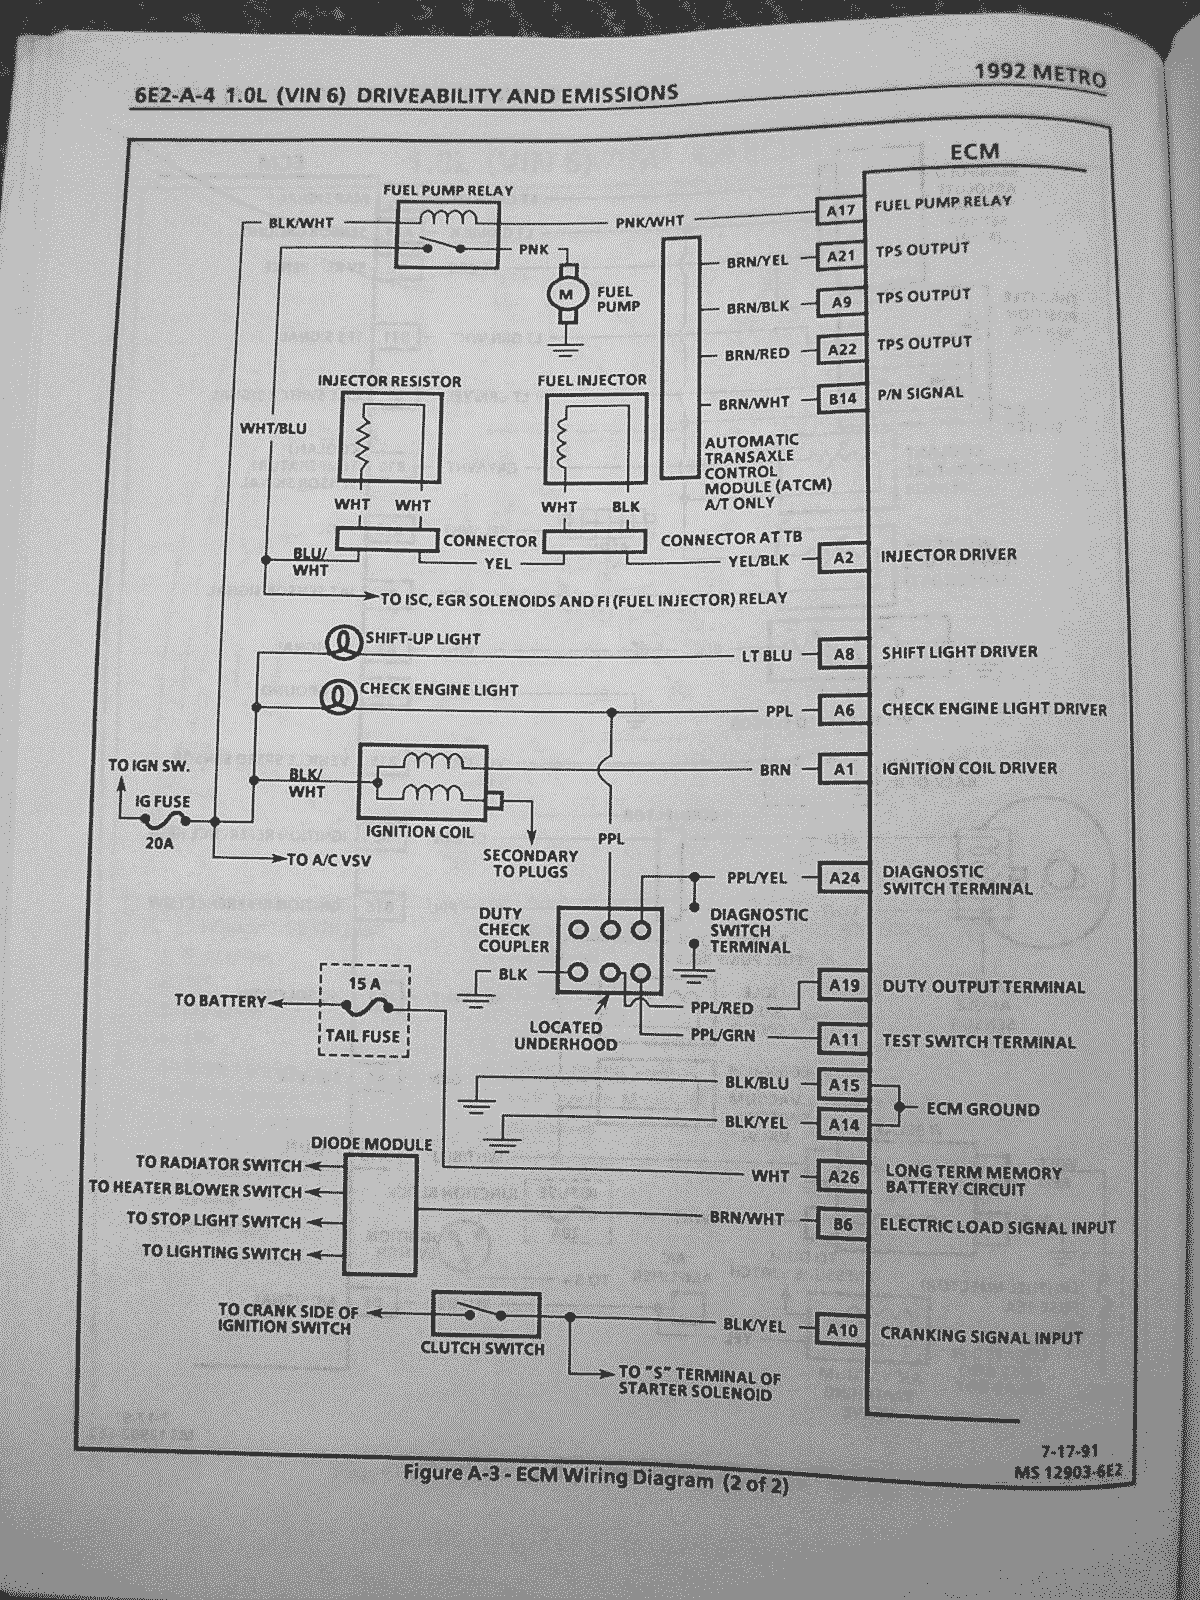 6e2 a 4 geo metro and suzuki swift wiring diagrams metroxfi com 1994 geo metro fuse box diagram at mr168.co